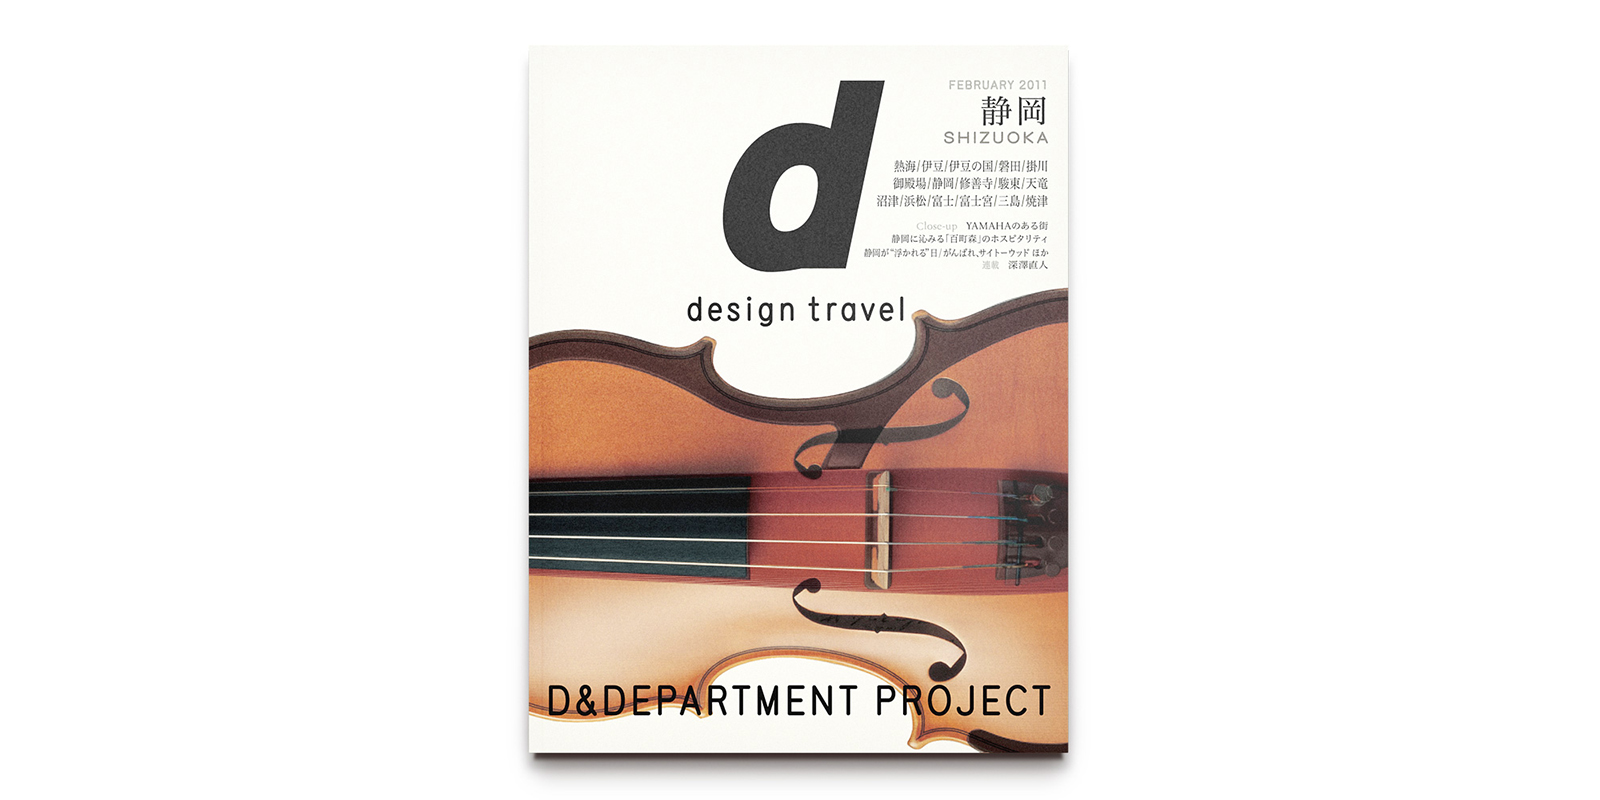 d design travel 静岡